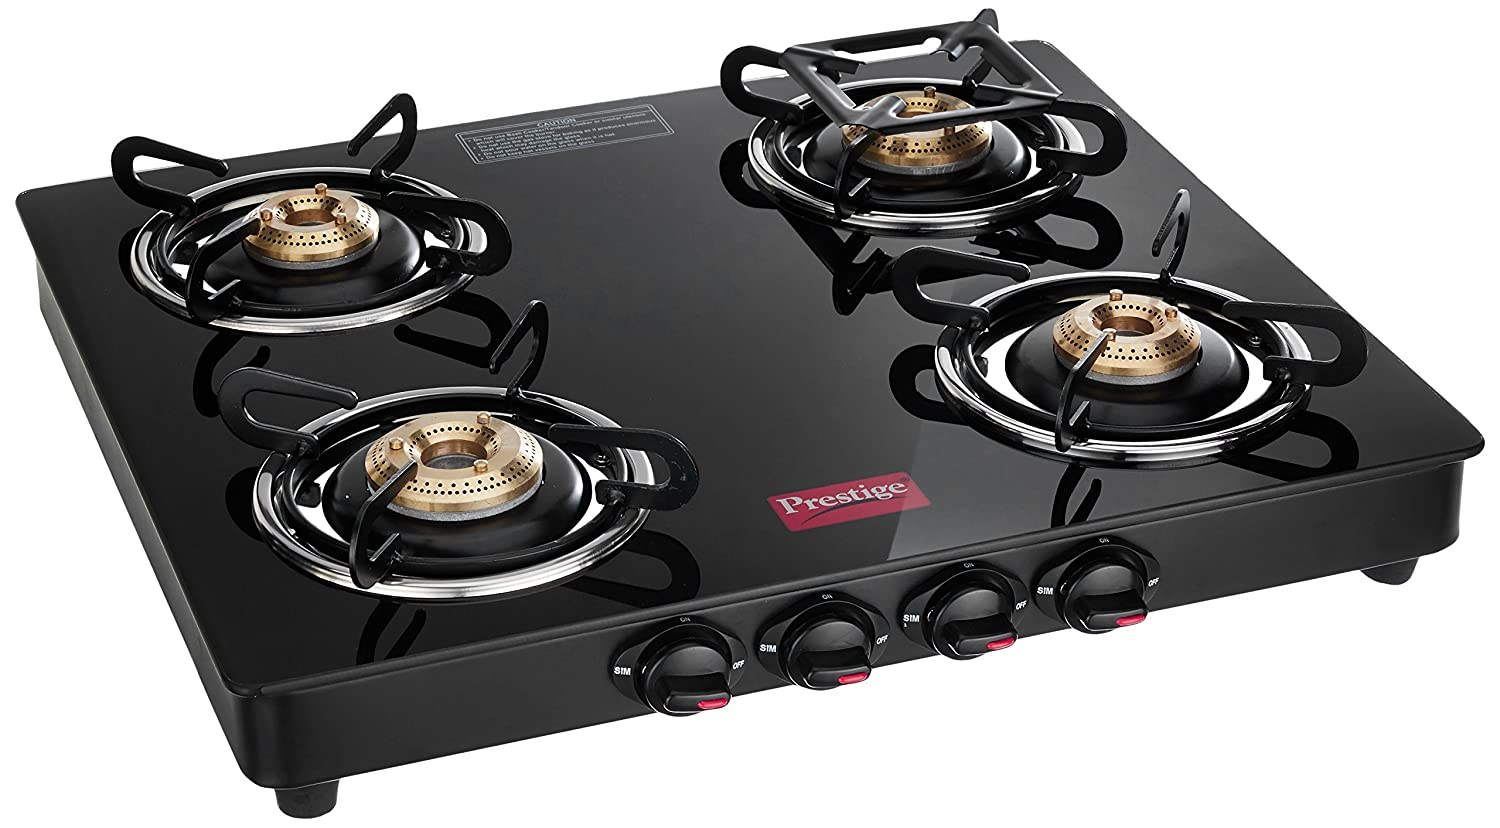 Prestige Marvel Glass 4 Burner Gas Stove